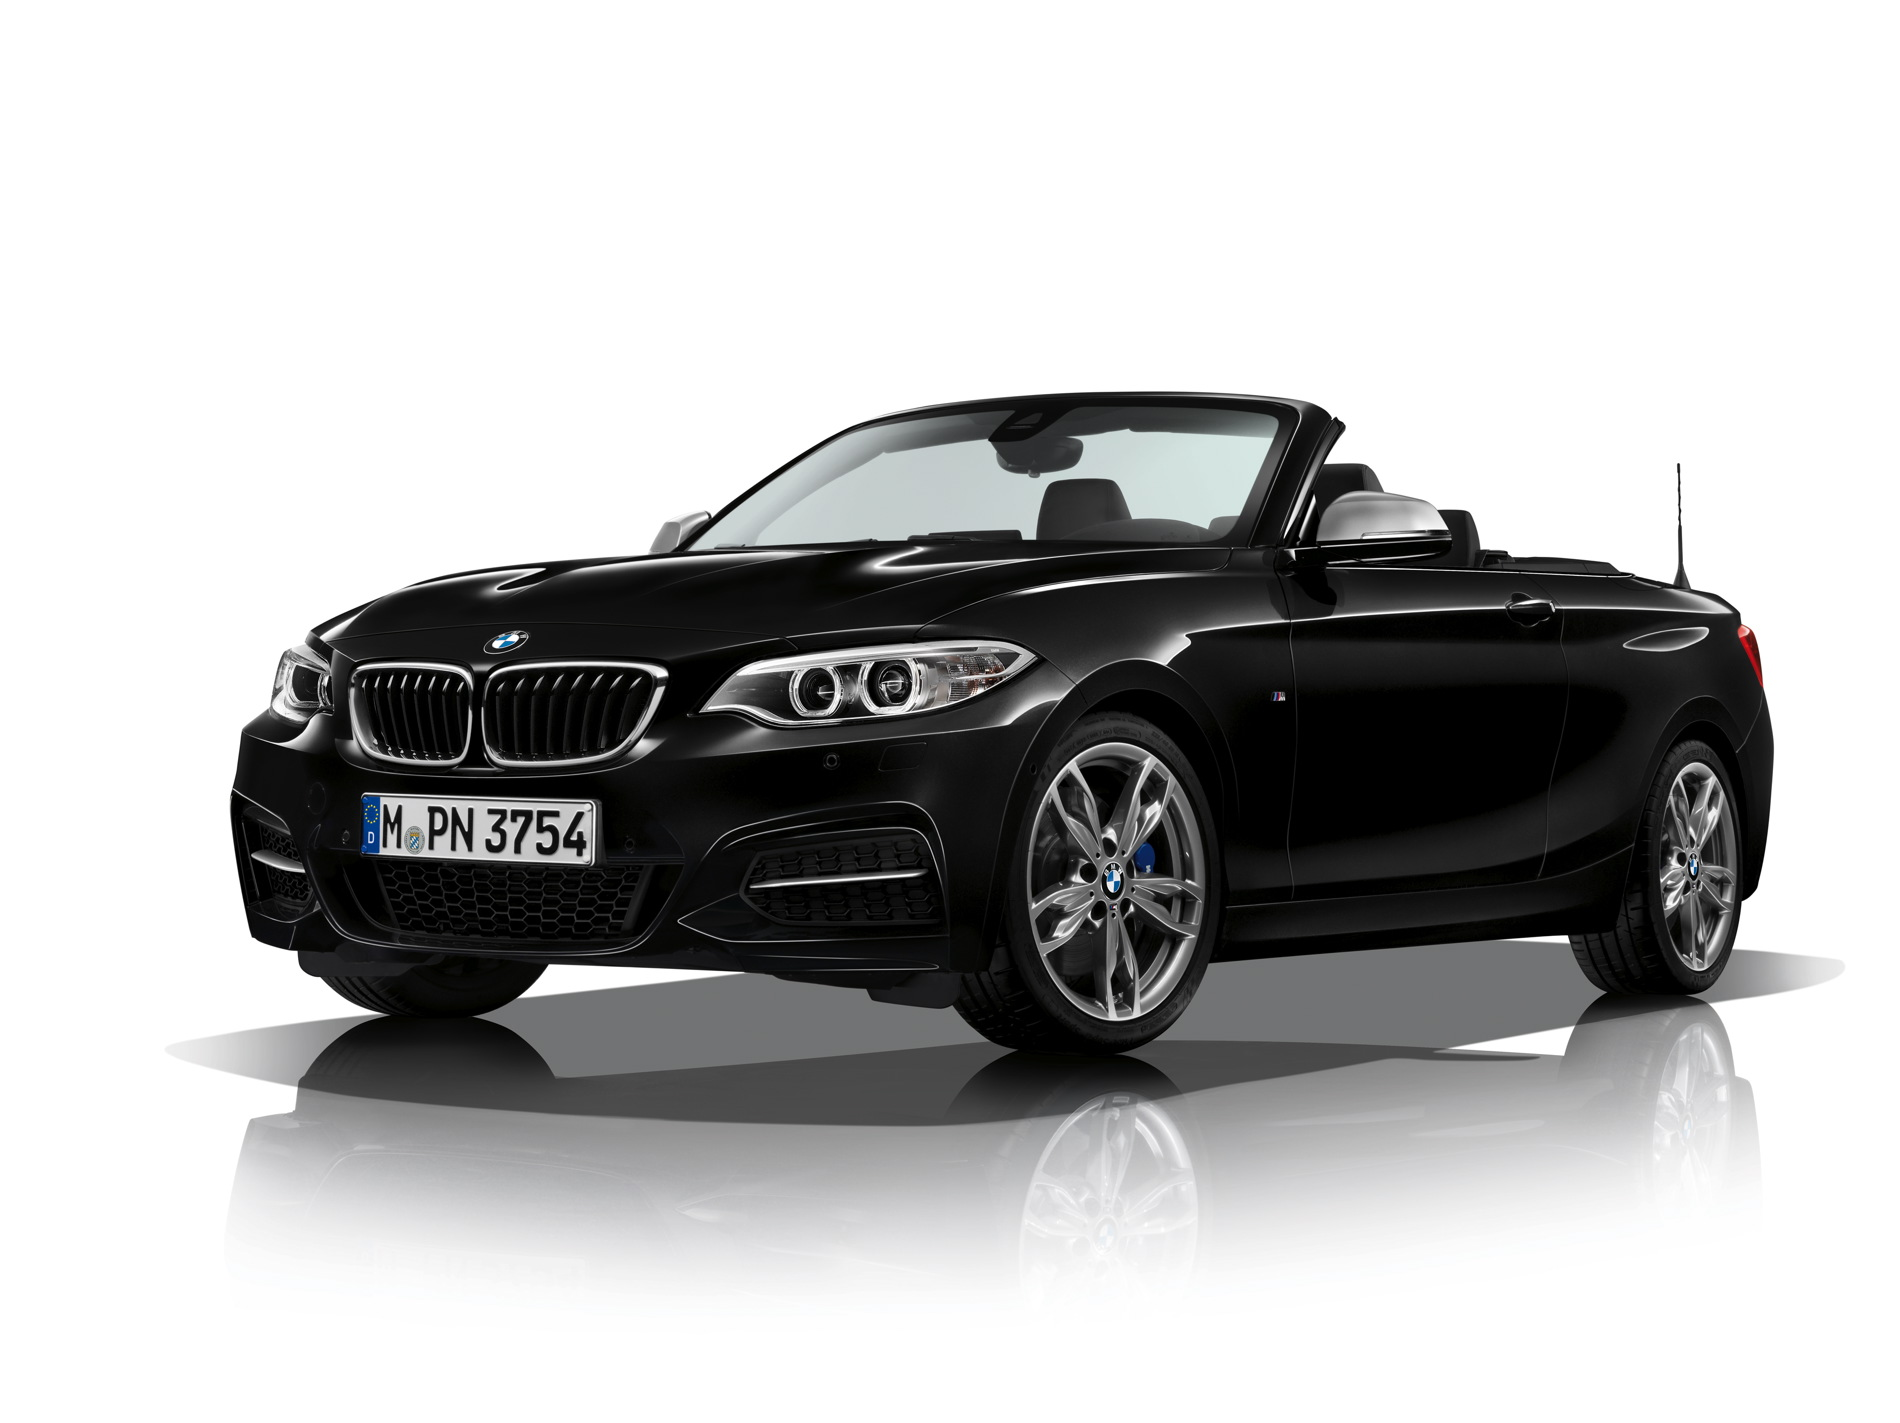 drives dct bmw car first review uk drive convertible series